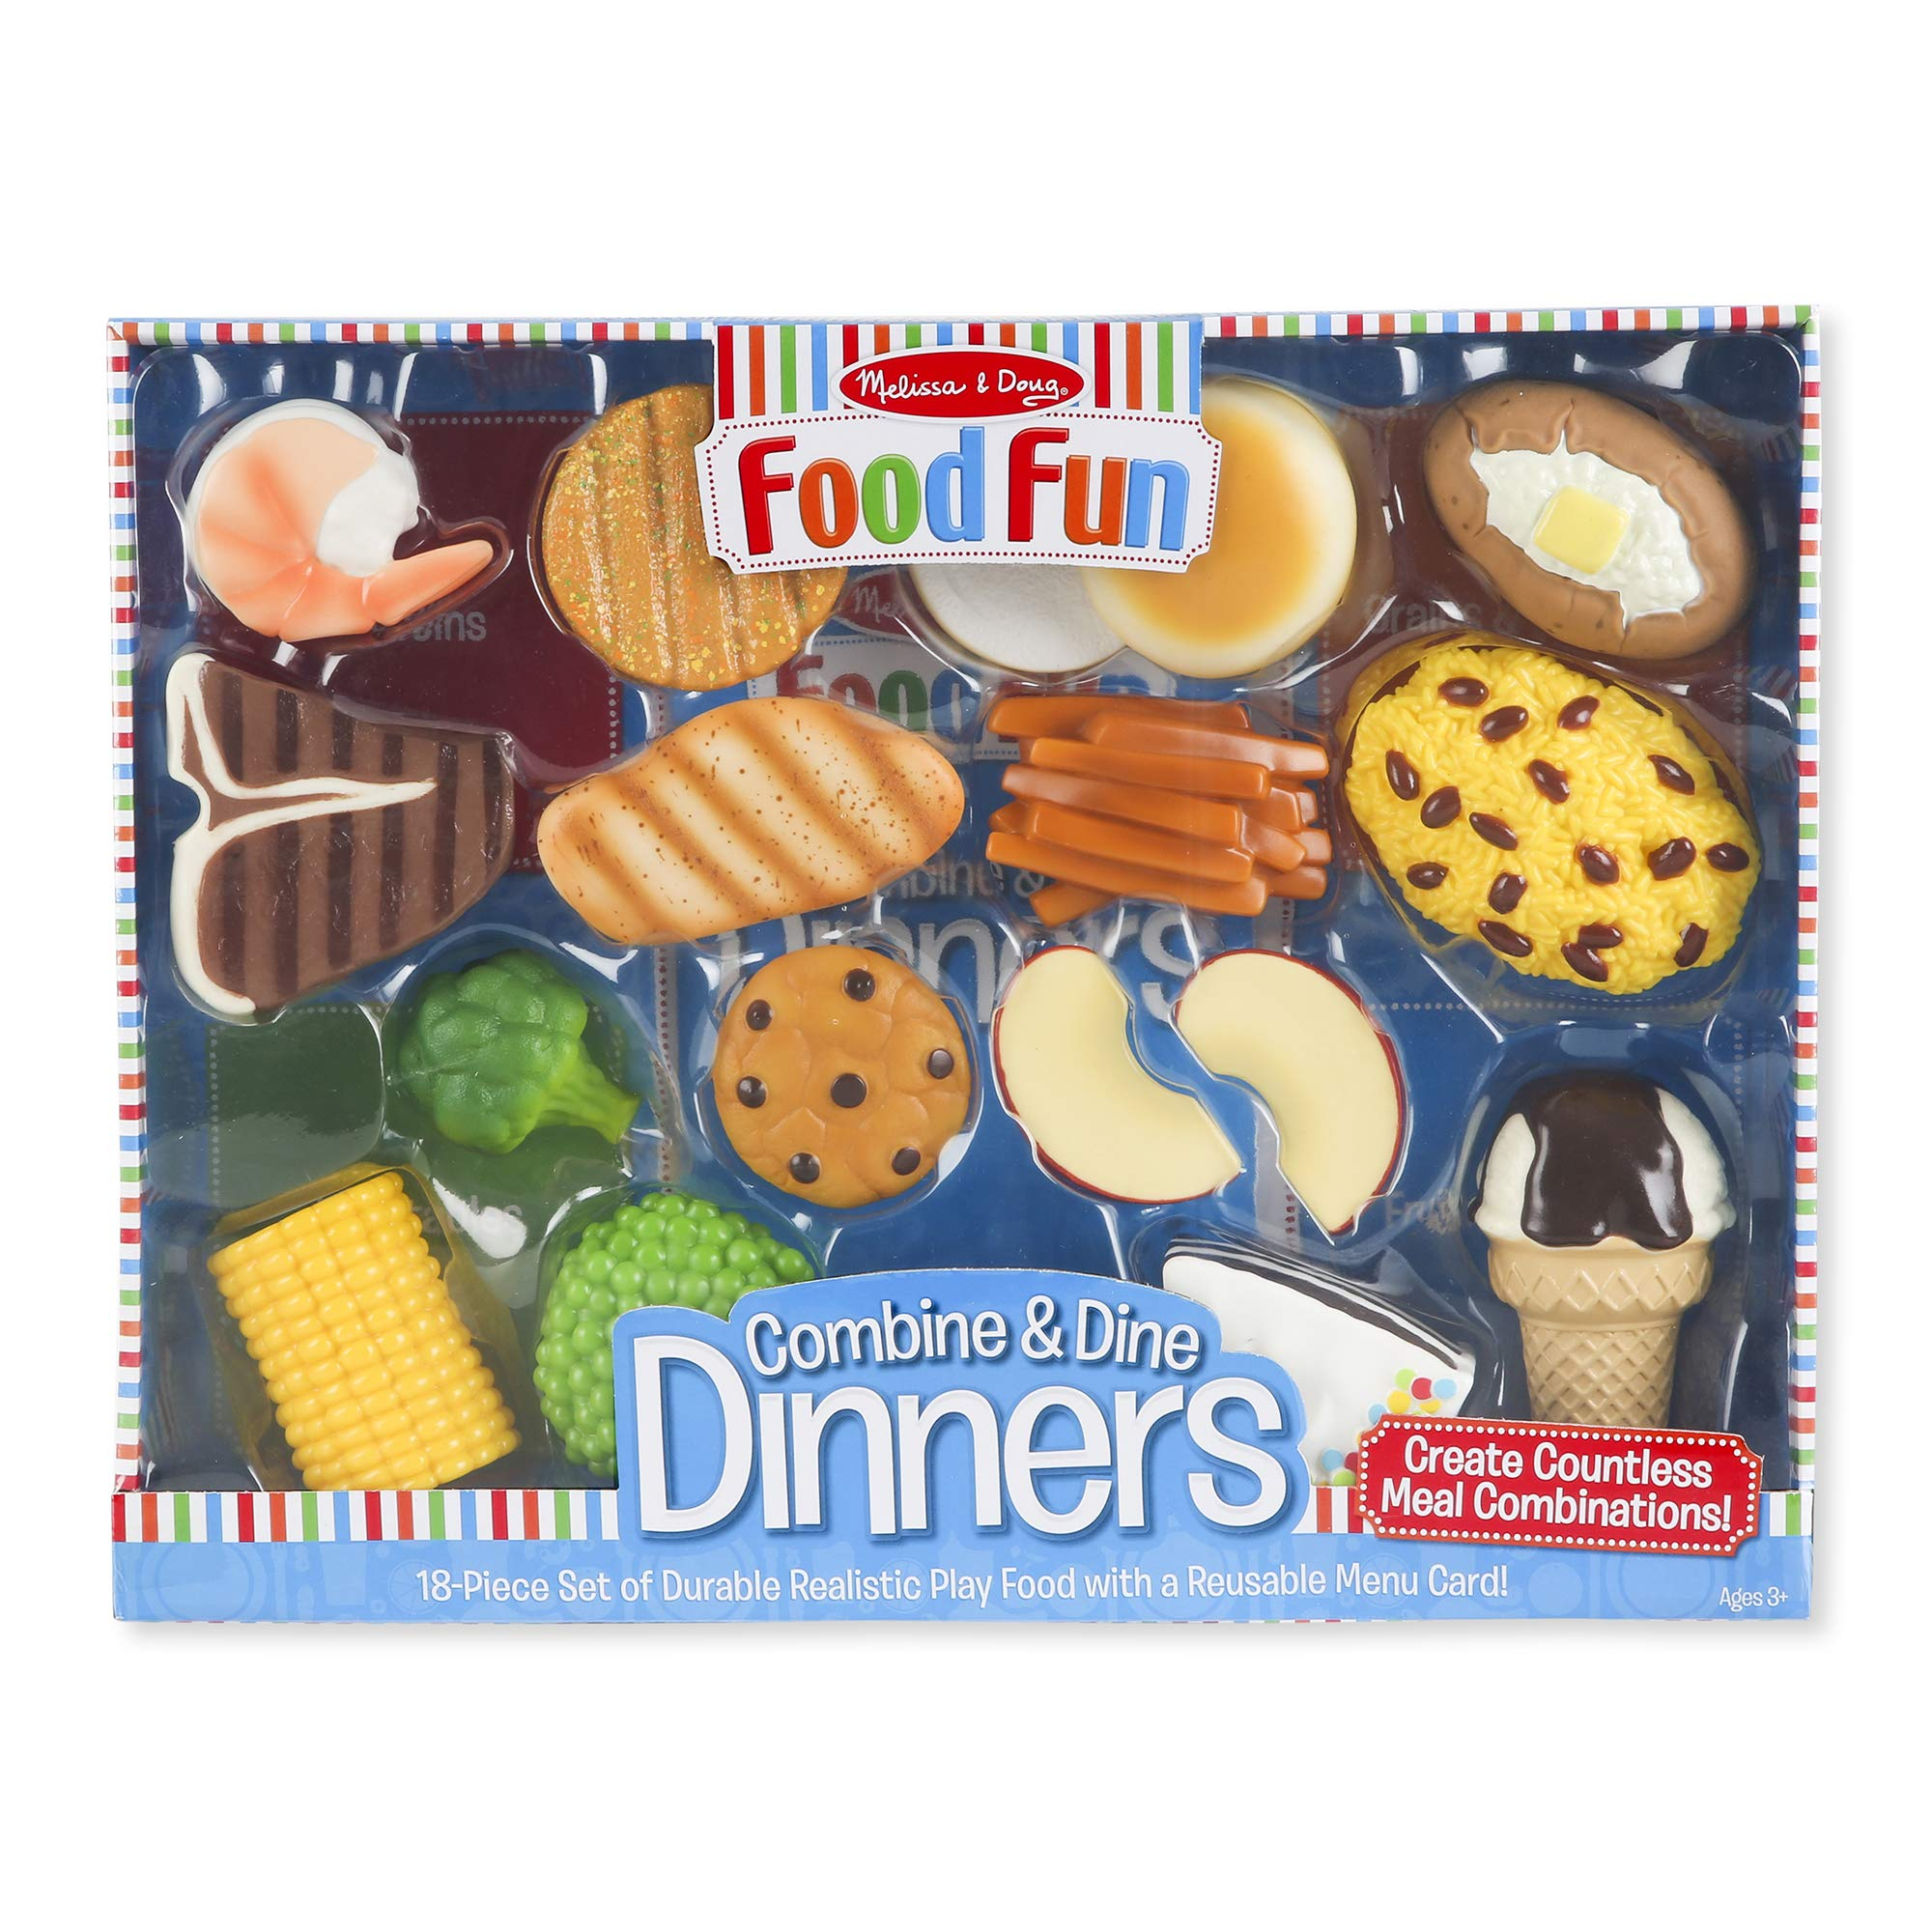 Melissa & Doug Food Fun Combine & Dine Dinners (Play Food Set, Great Gift for Girls and Boys - Best for 3, 4, 5 Year Olds and Up) by Melissa & Doug